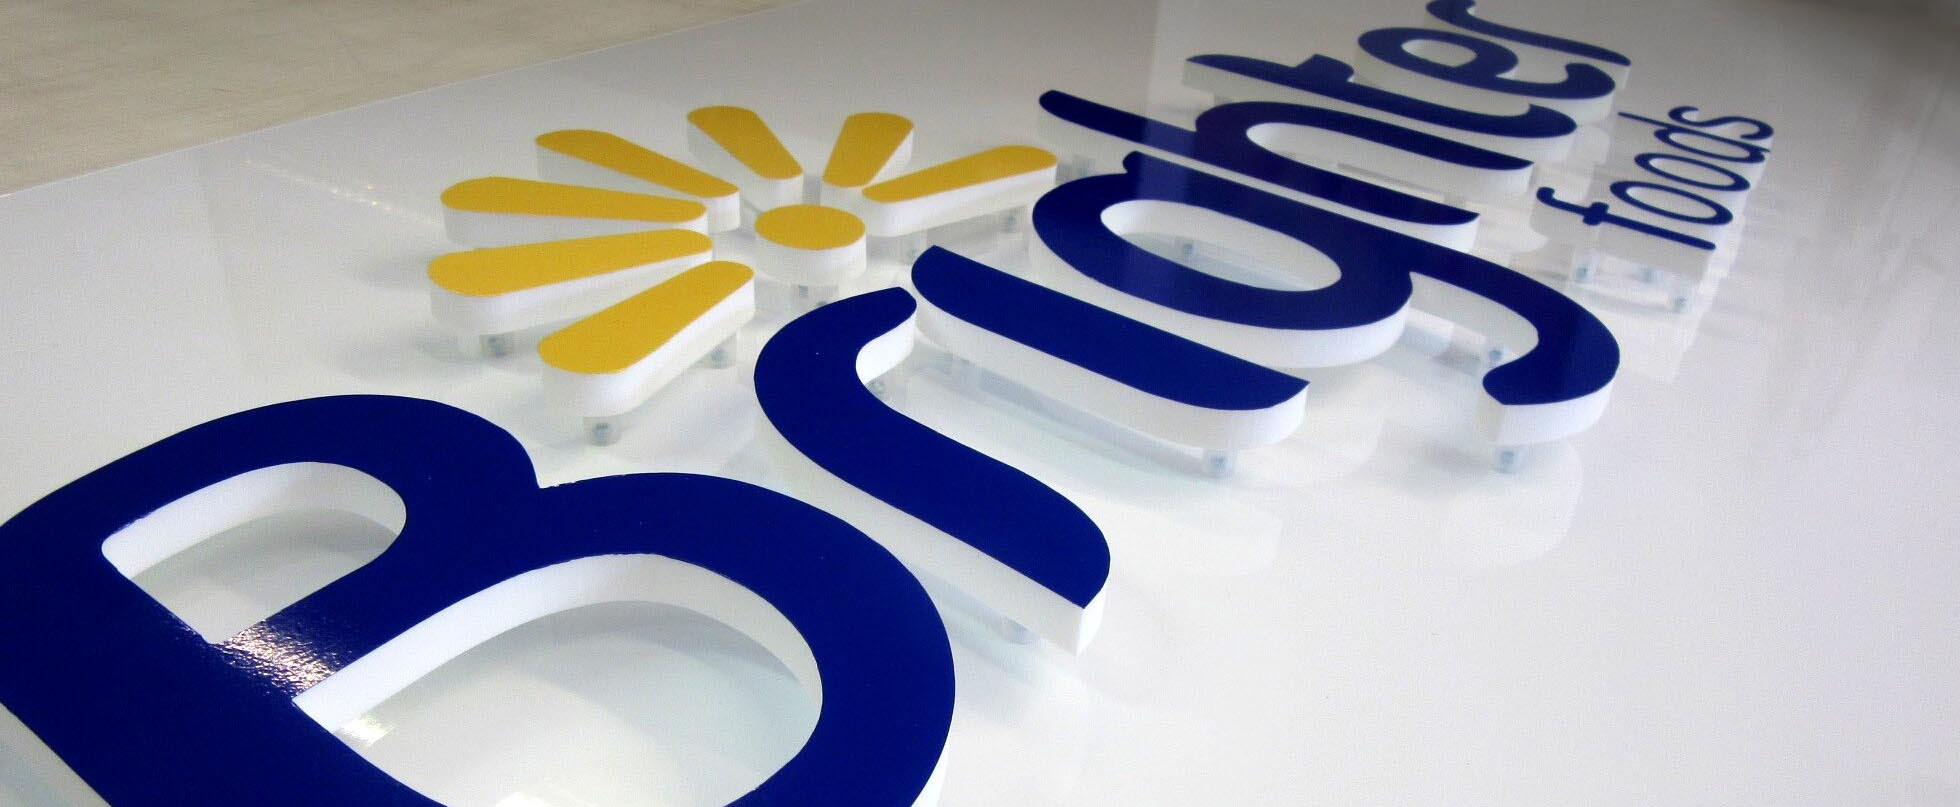 Acrylic Flat cut letters and Logos